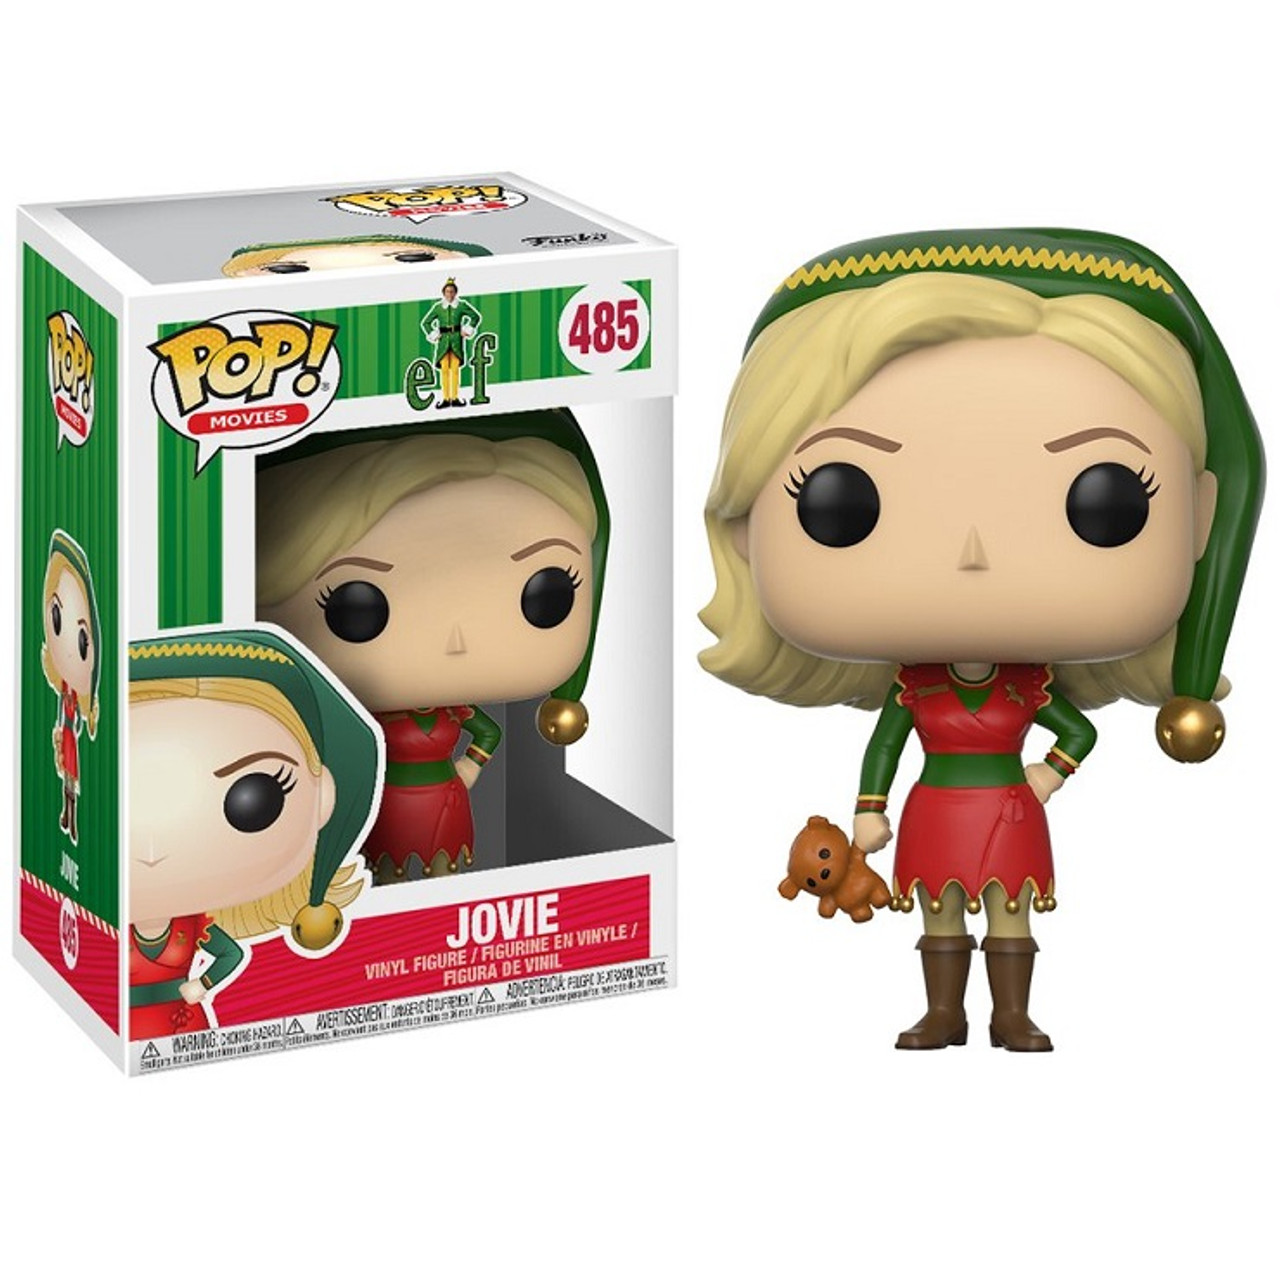 Elf the Movie Jovie Pop! Vinyl Figure by Funko 21379